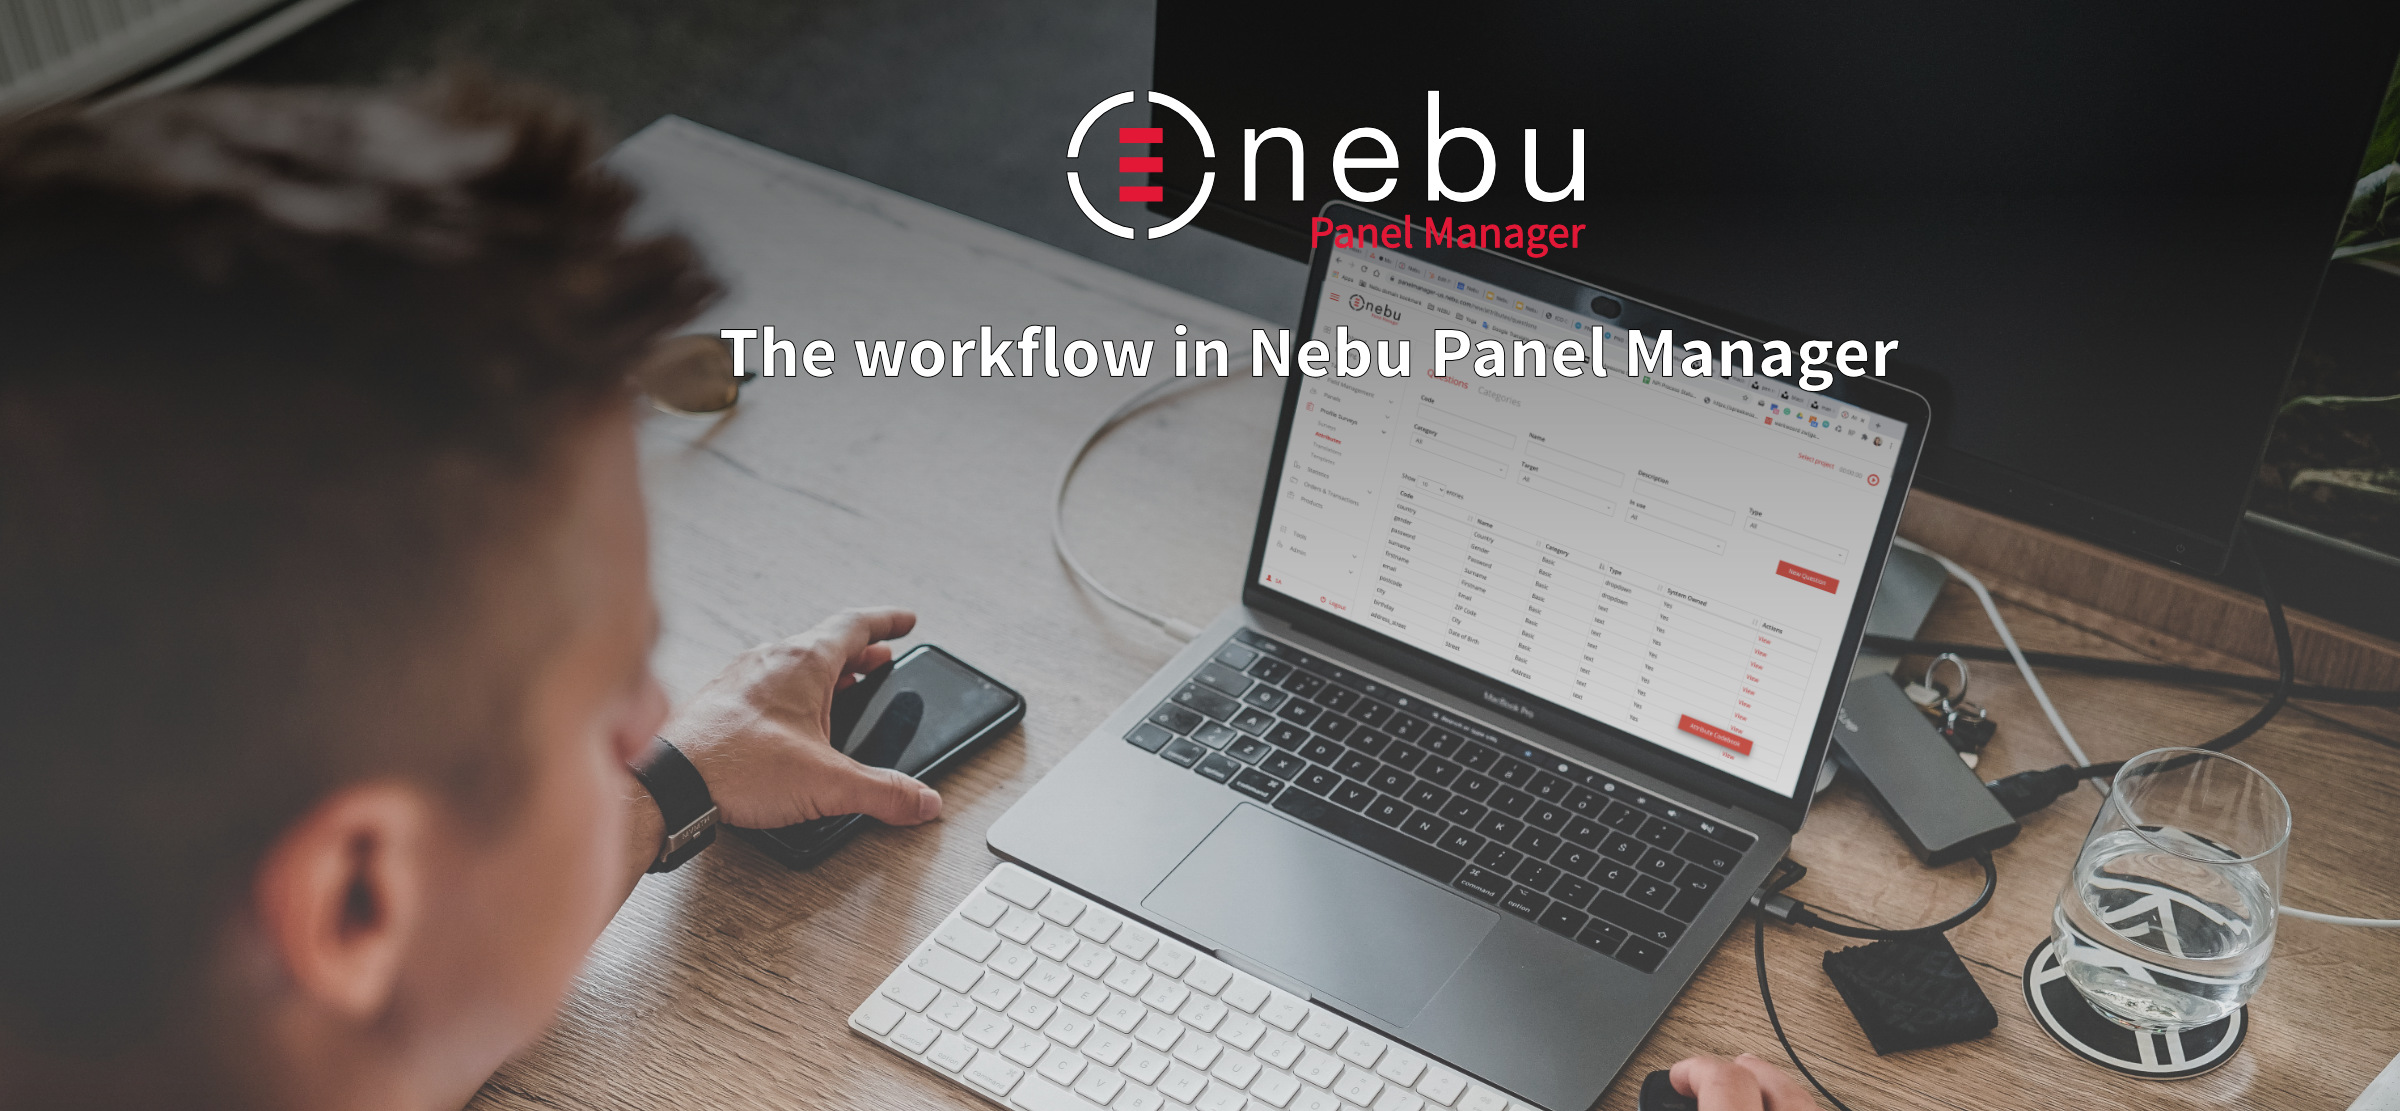 Learn more about the workflow in Nebu Panel Manager